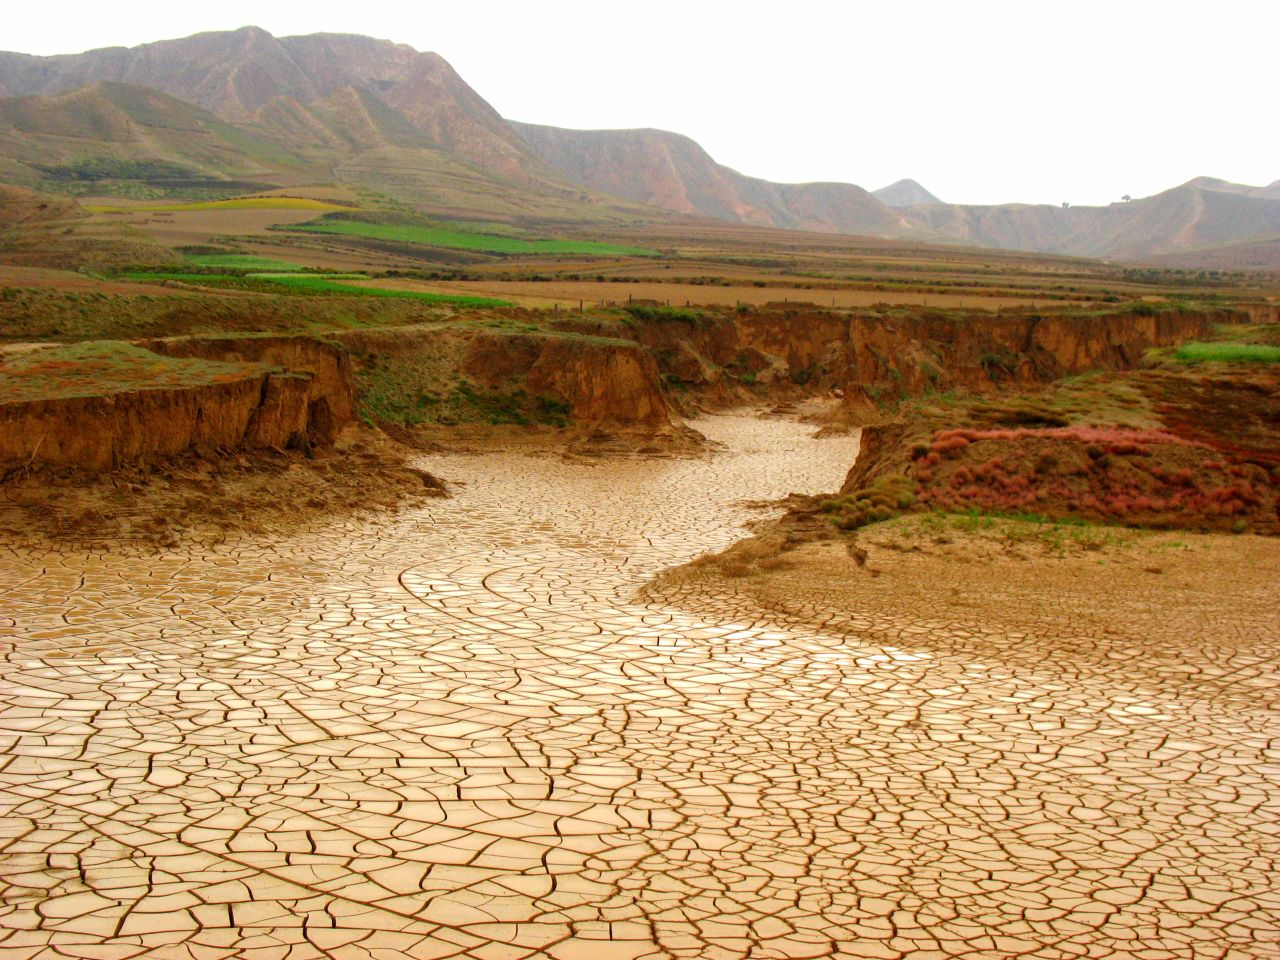 Dry river, parched earth, drought